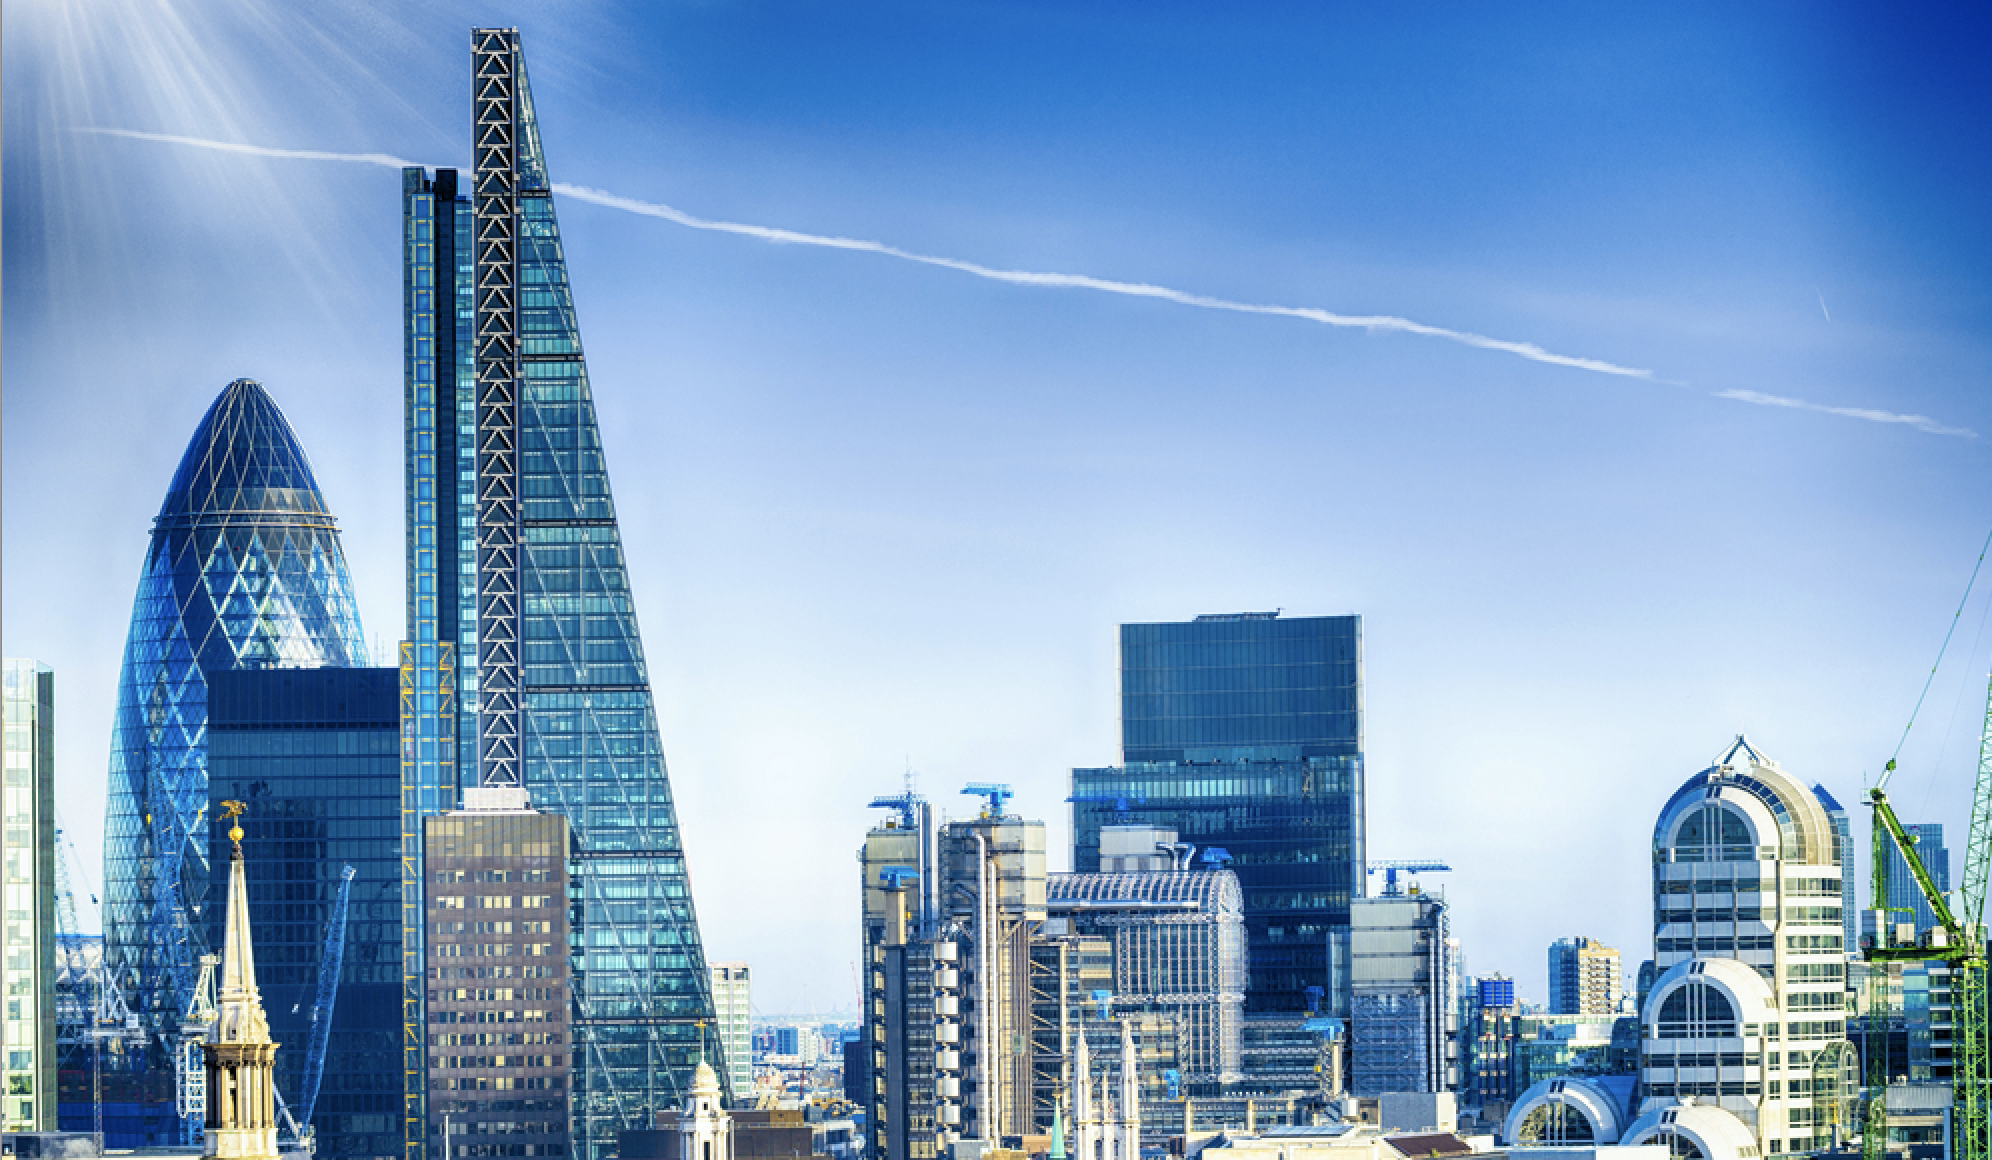 London Commercial Property Market Set For a Boost in 2020